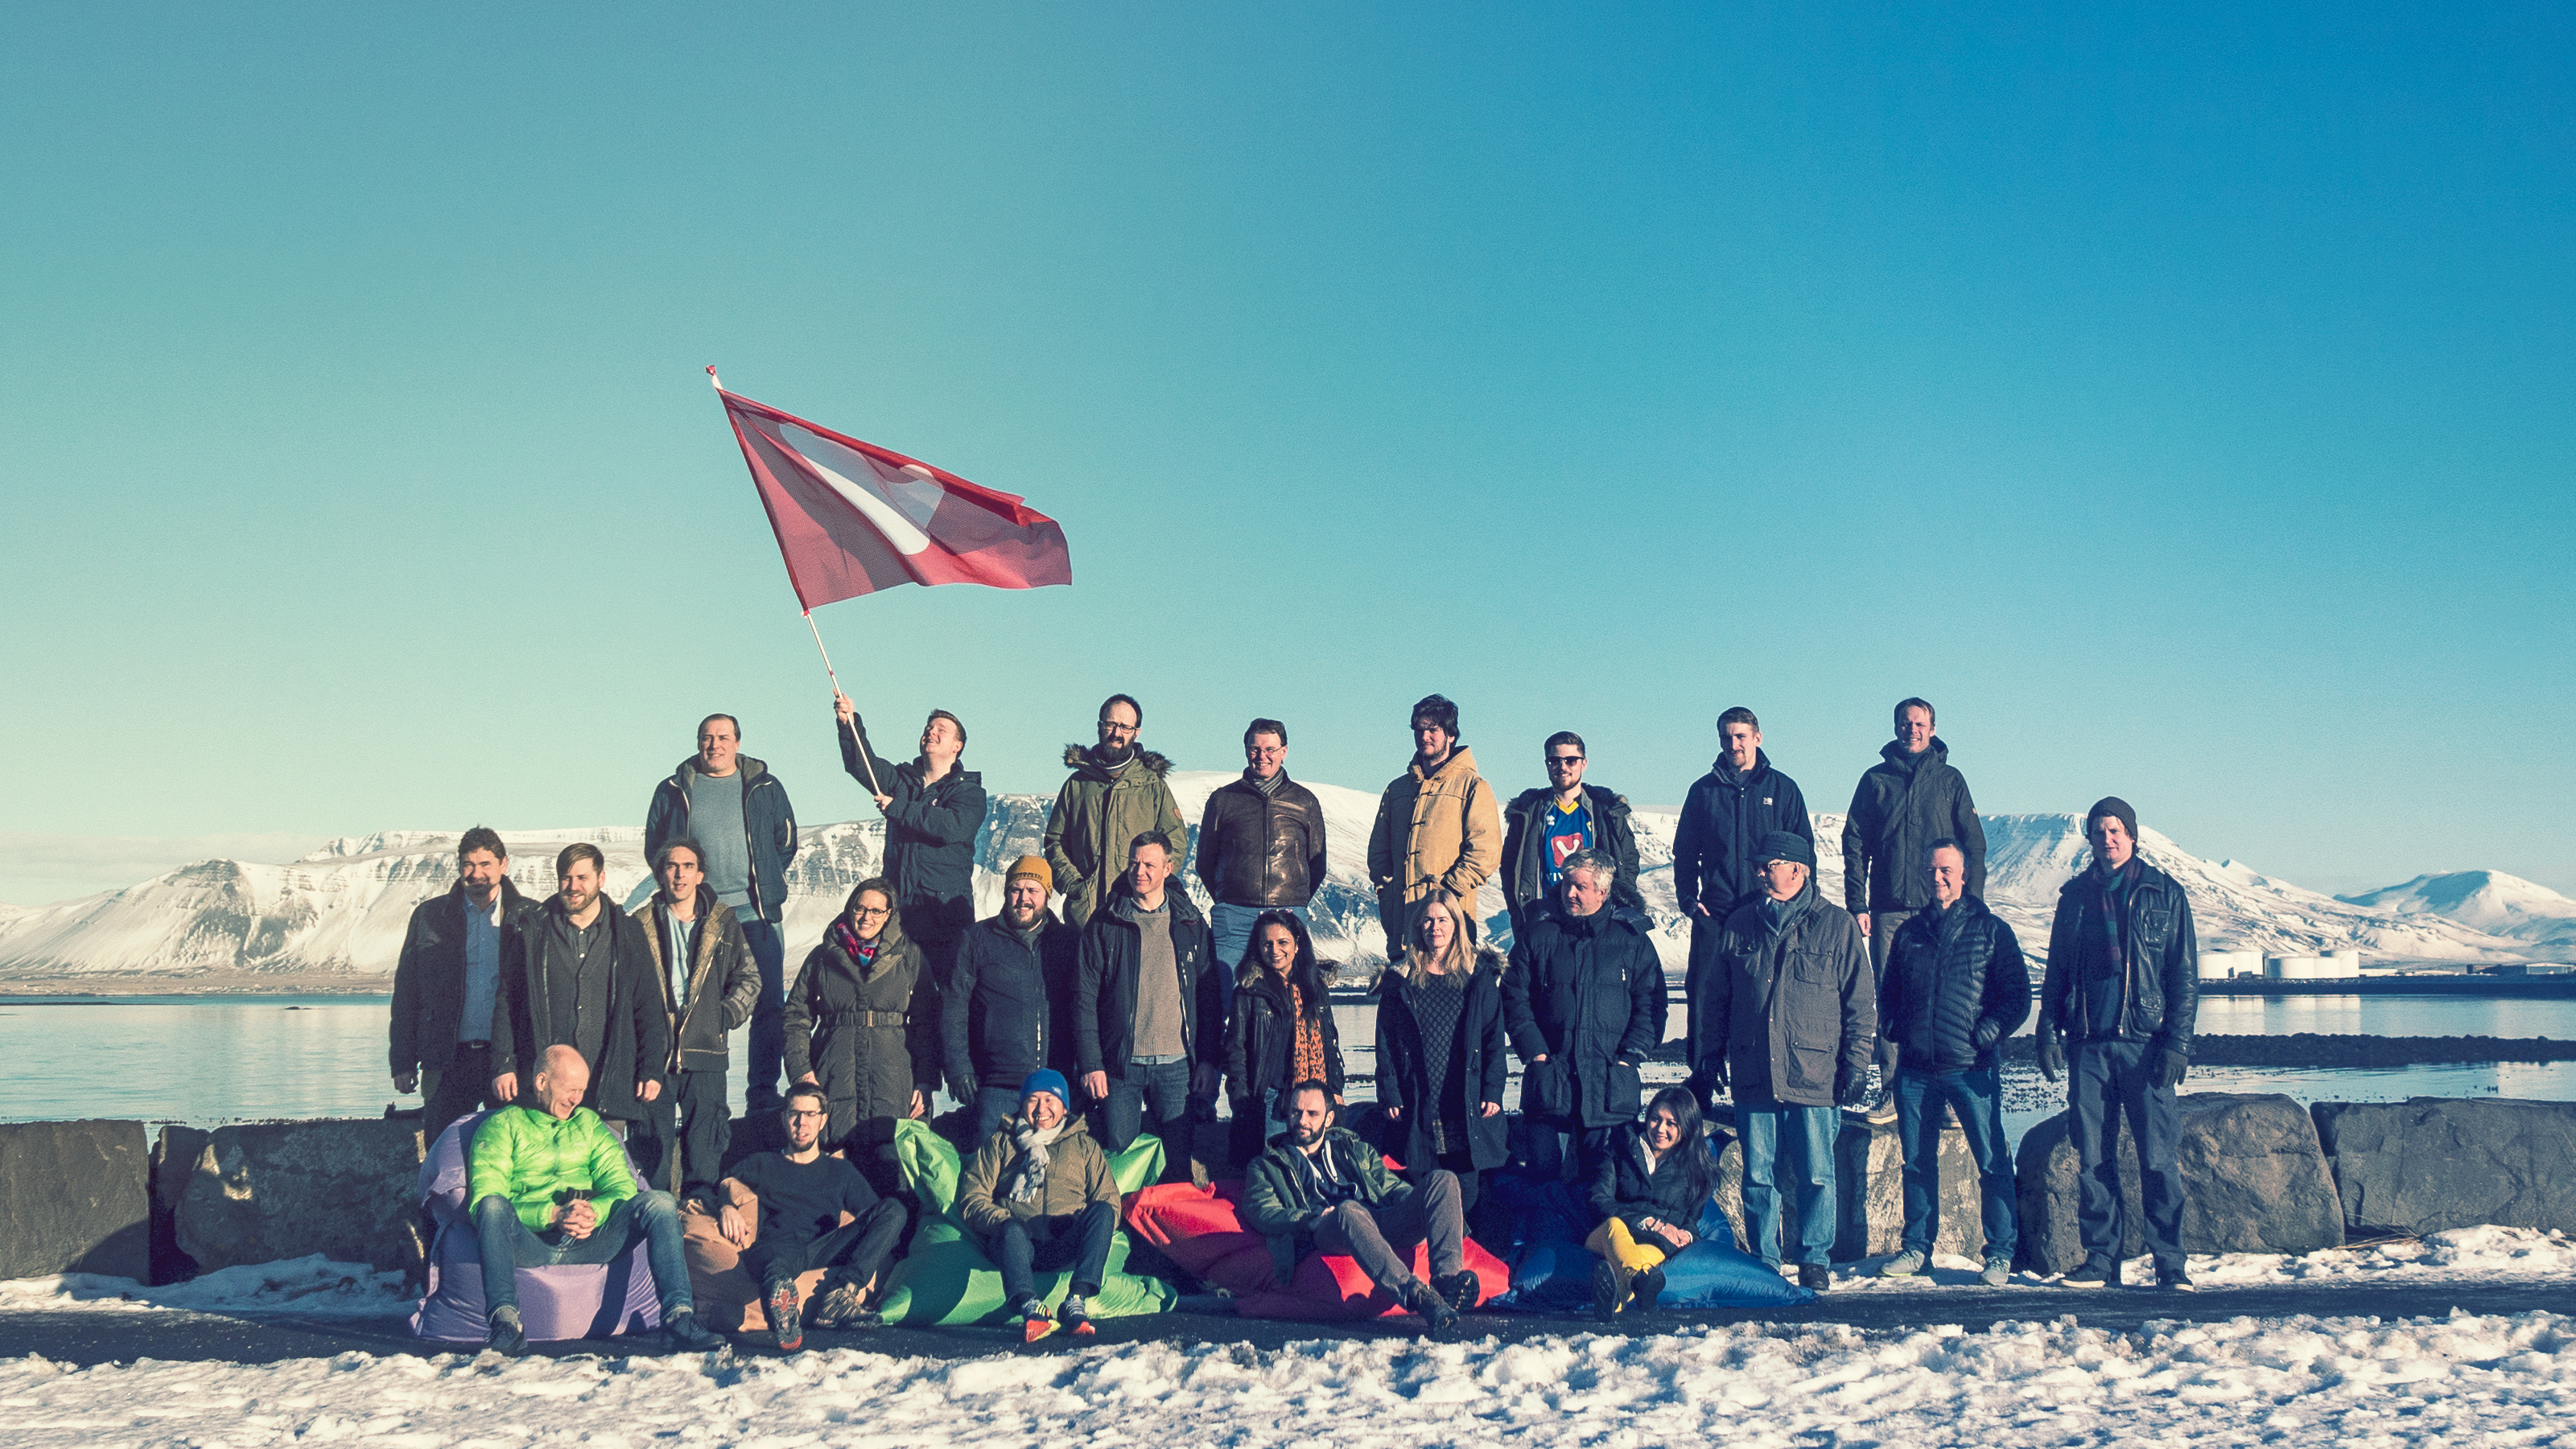 Part of Vivaldi's team in Iceland. Tatsuki Tomita is sitting in the green bean bag; Jon von Tetzchner is first from the left in the middle row.